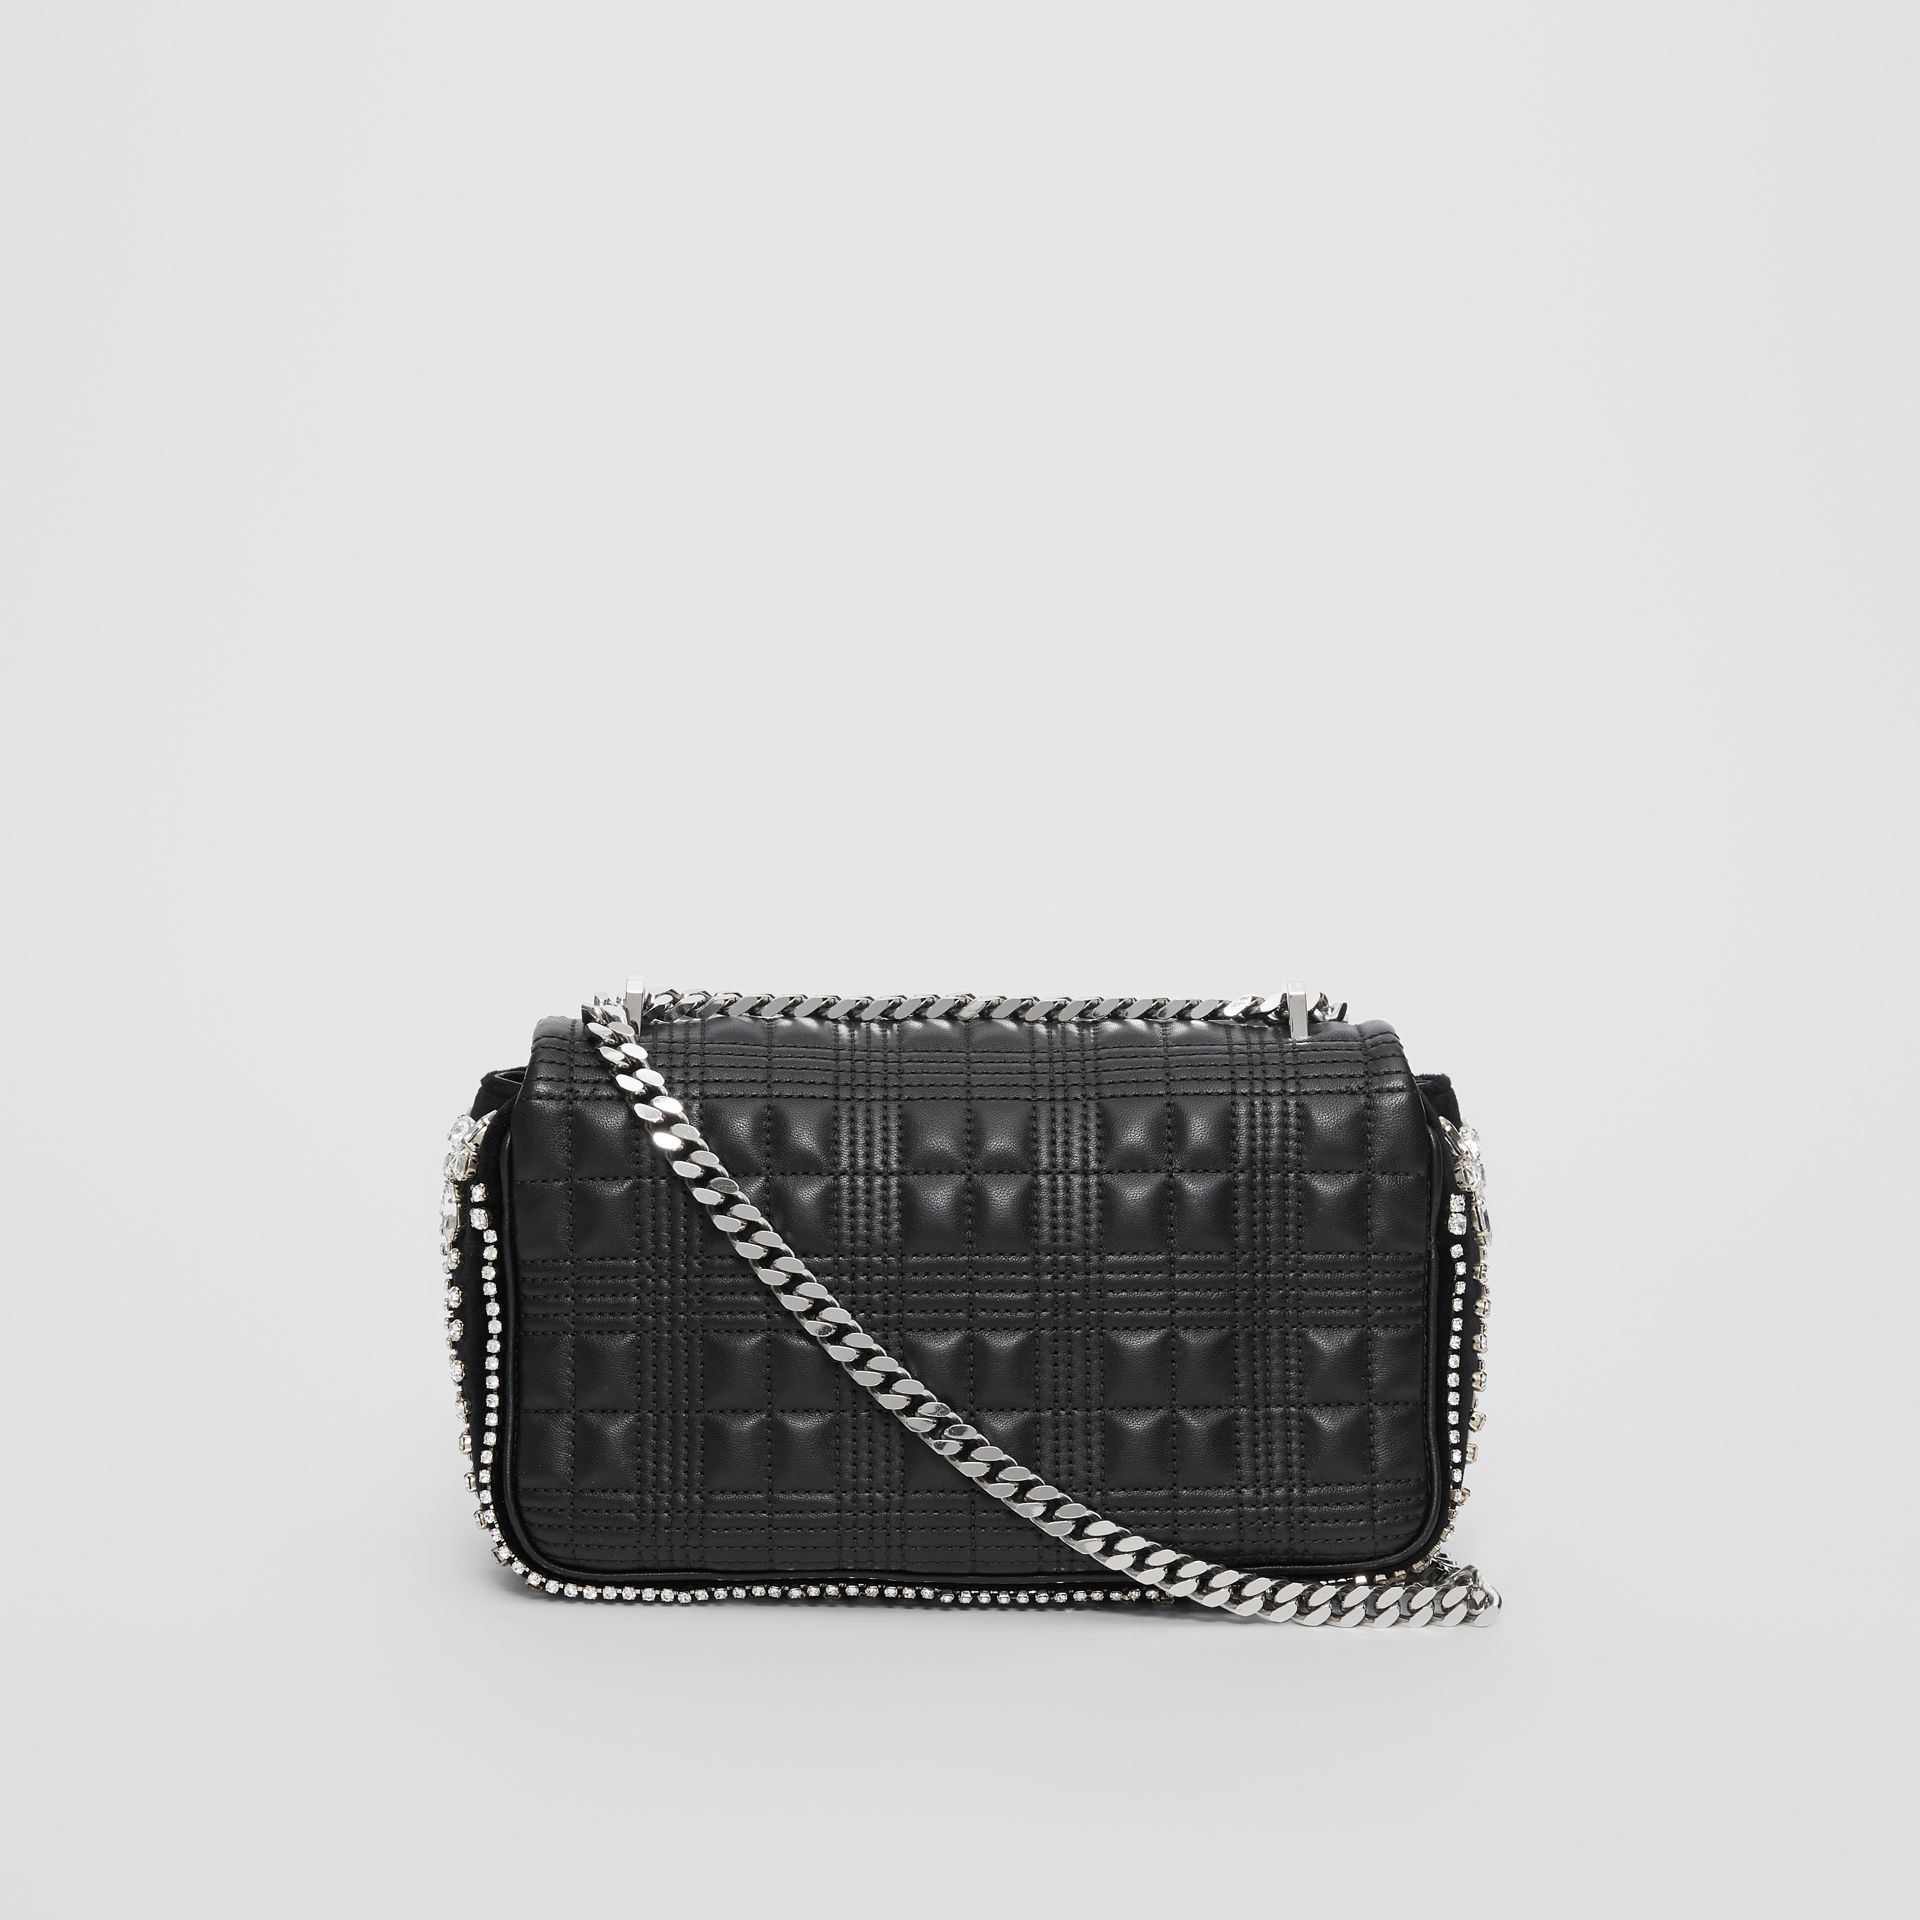 Small Crystal Detail Quilted Check Lambskin Lola Bag in Black - Women | Burberry - gallery image 4